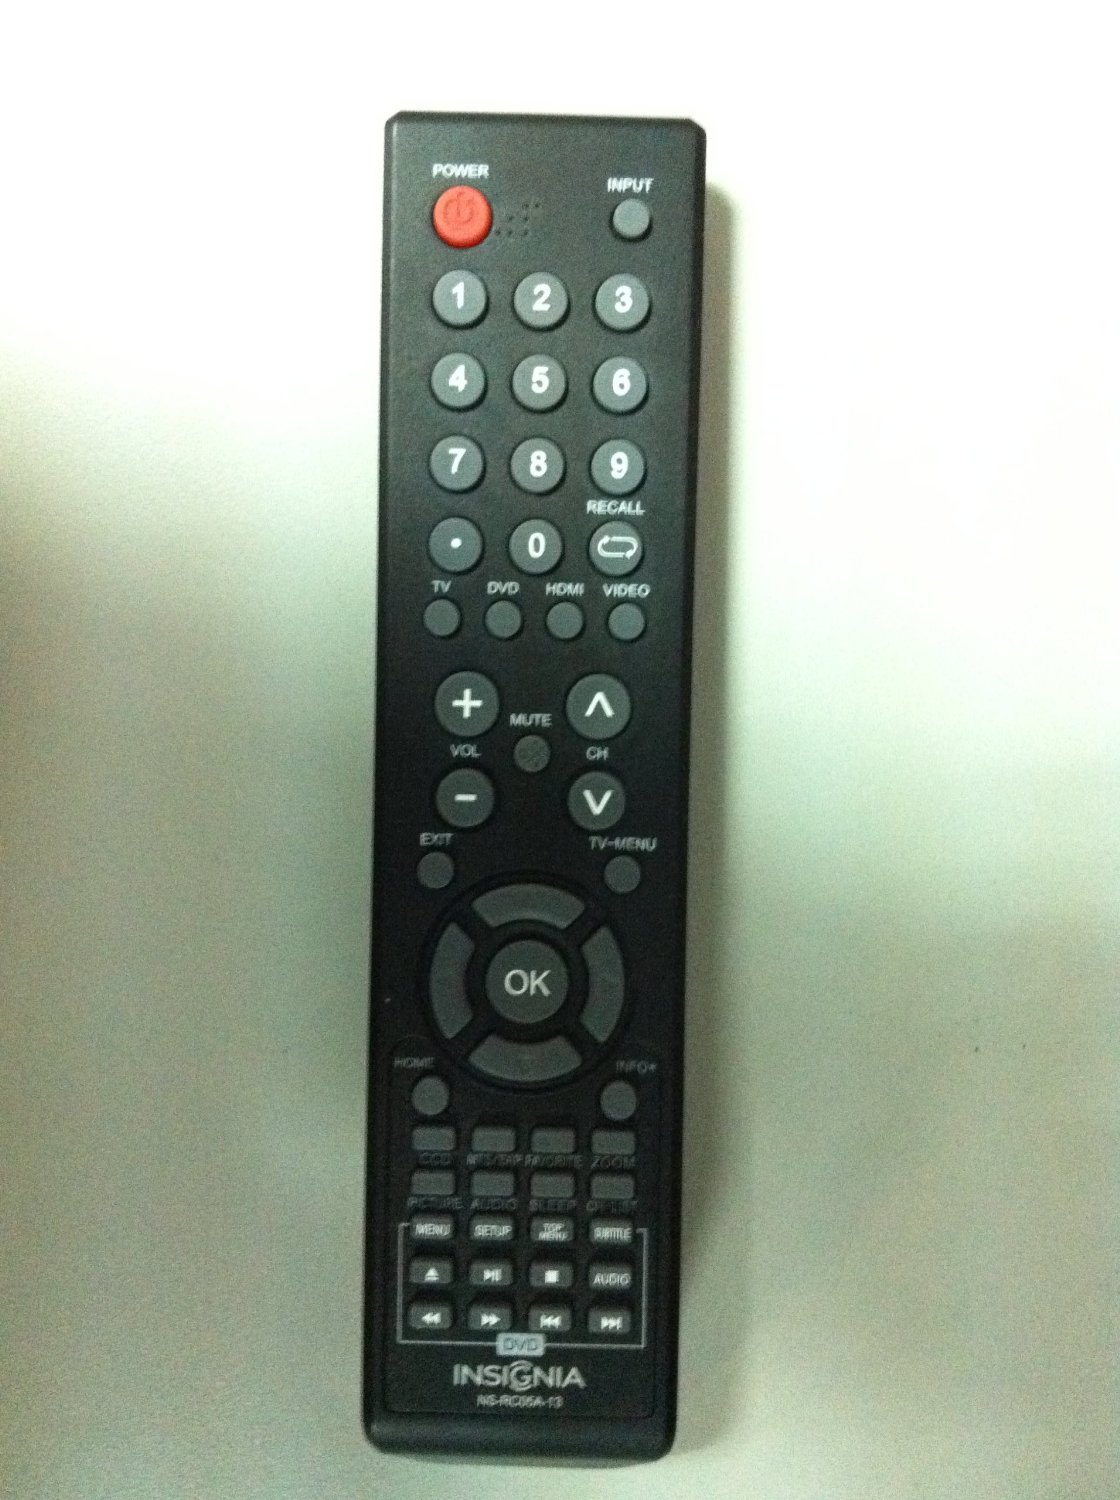 NEW Insignia Combo DVD+TV remote NS-RC05A-13 (NS-RC04A-12) for all Insignia combo brand LCD LED DVD TV, Such as NS-24LD100A13 NS-32LD120A13 NS-29LD120A13 NS-19ED200NA14 NS-28ED200NA14 NS-19LD120A13 NS-LTDVD19-09 NS-LTDVD26-09 NS-LTDVD32-09 NS-LDVD19Q-10A NS-LDVD26Q10A NS-LDVD32Q10A COMB DVD+TV